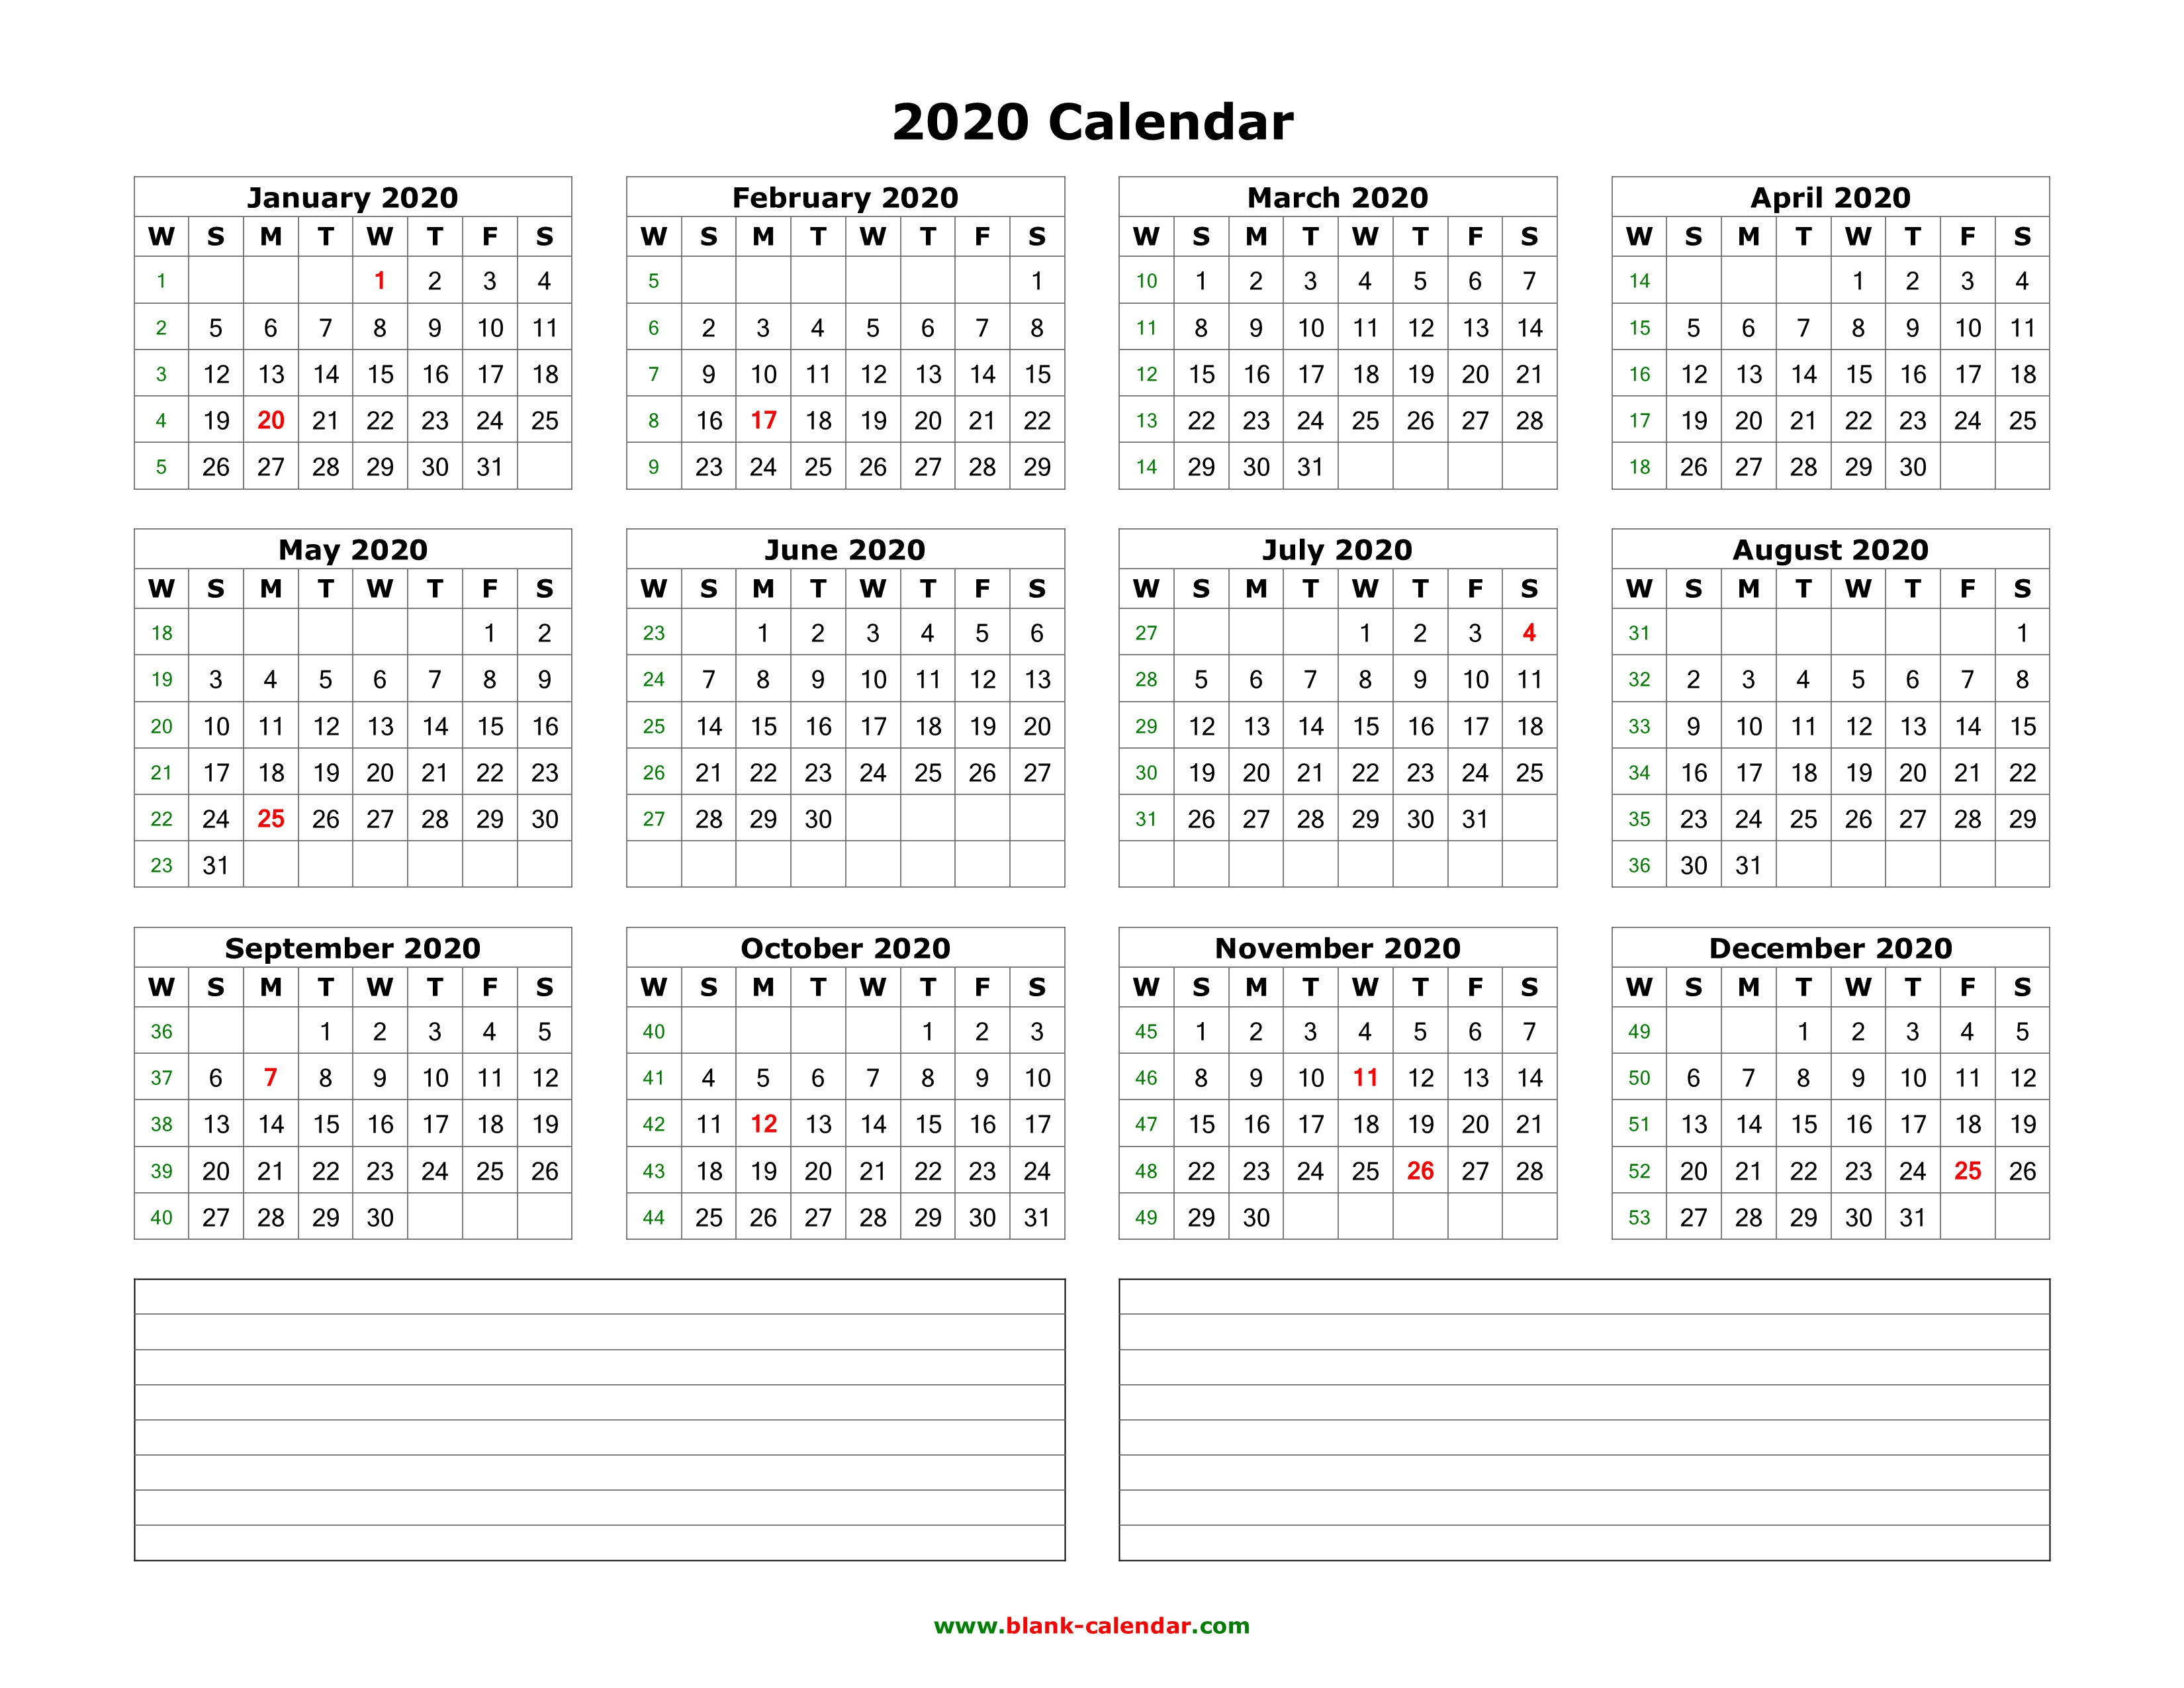 Download Blank Calendar 2020 With Space For Notes (12 Months On One for Free Printable 2020 Calendar With Space To Write